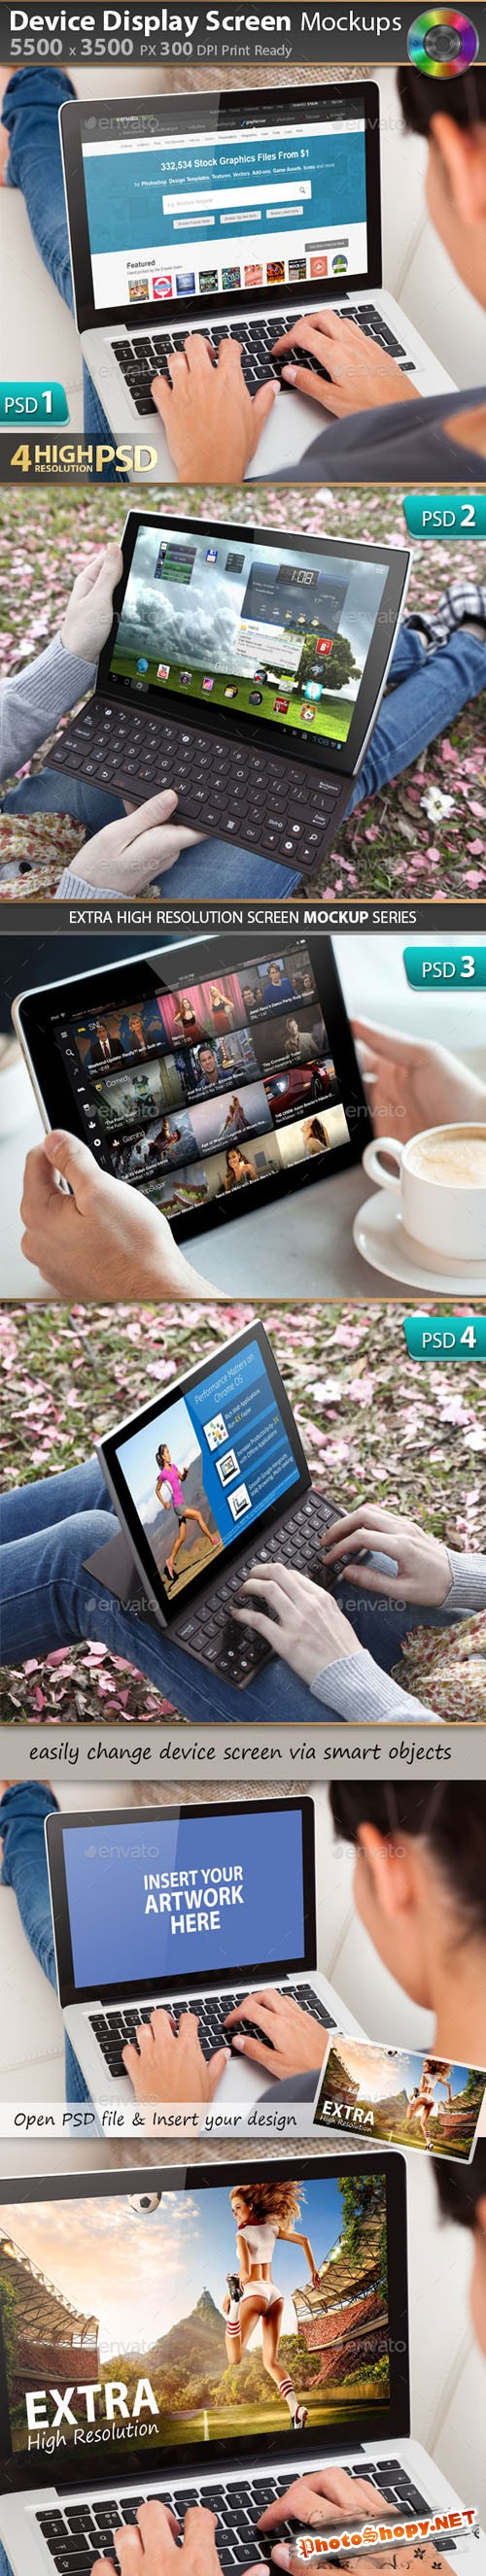 Responsive Display Device Mockup V1 - Graphicriver 10198143